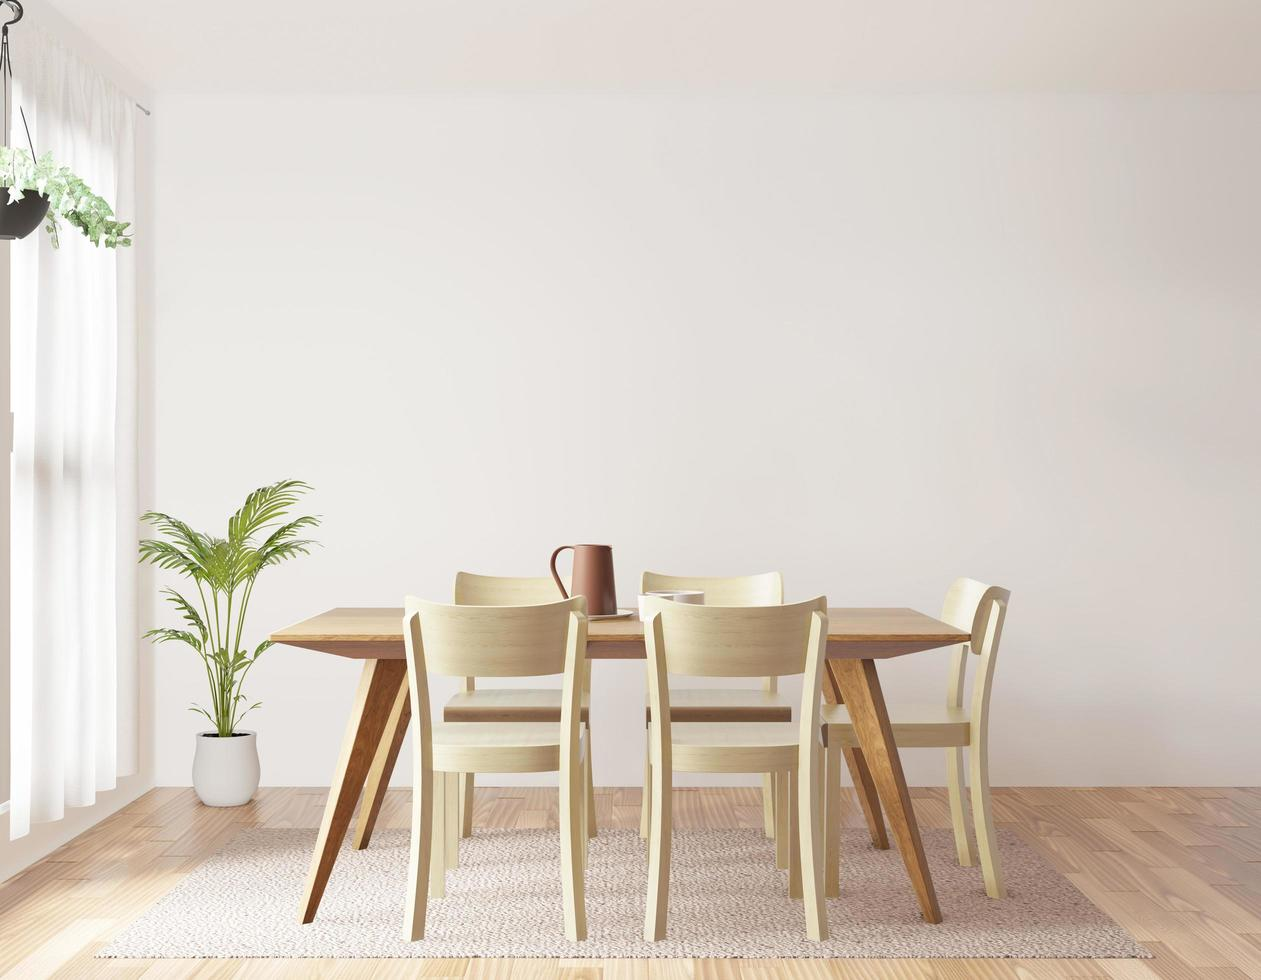 Dining room on white background, front view photo